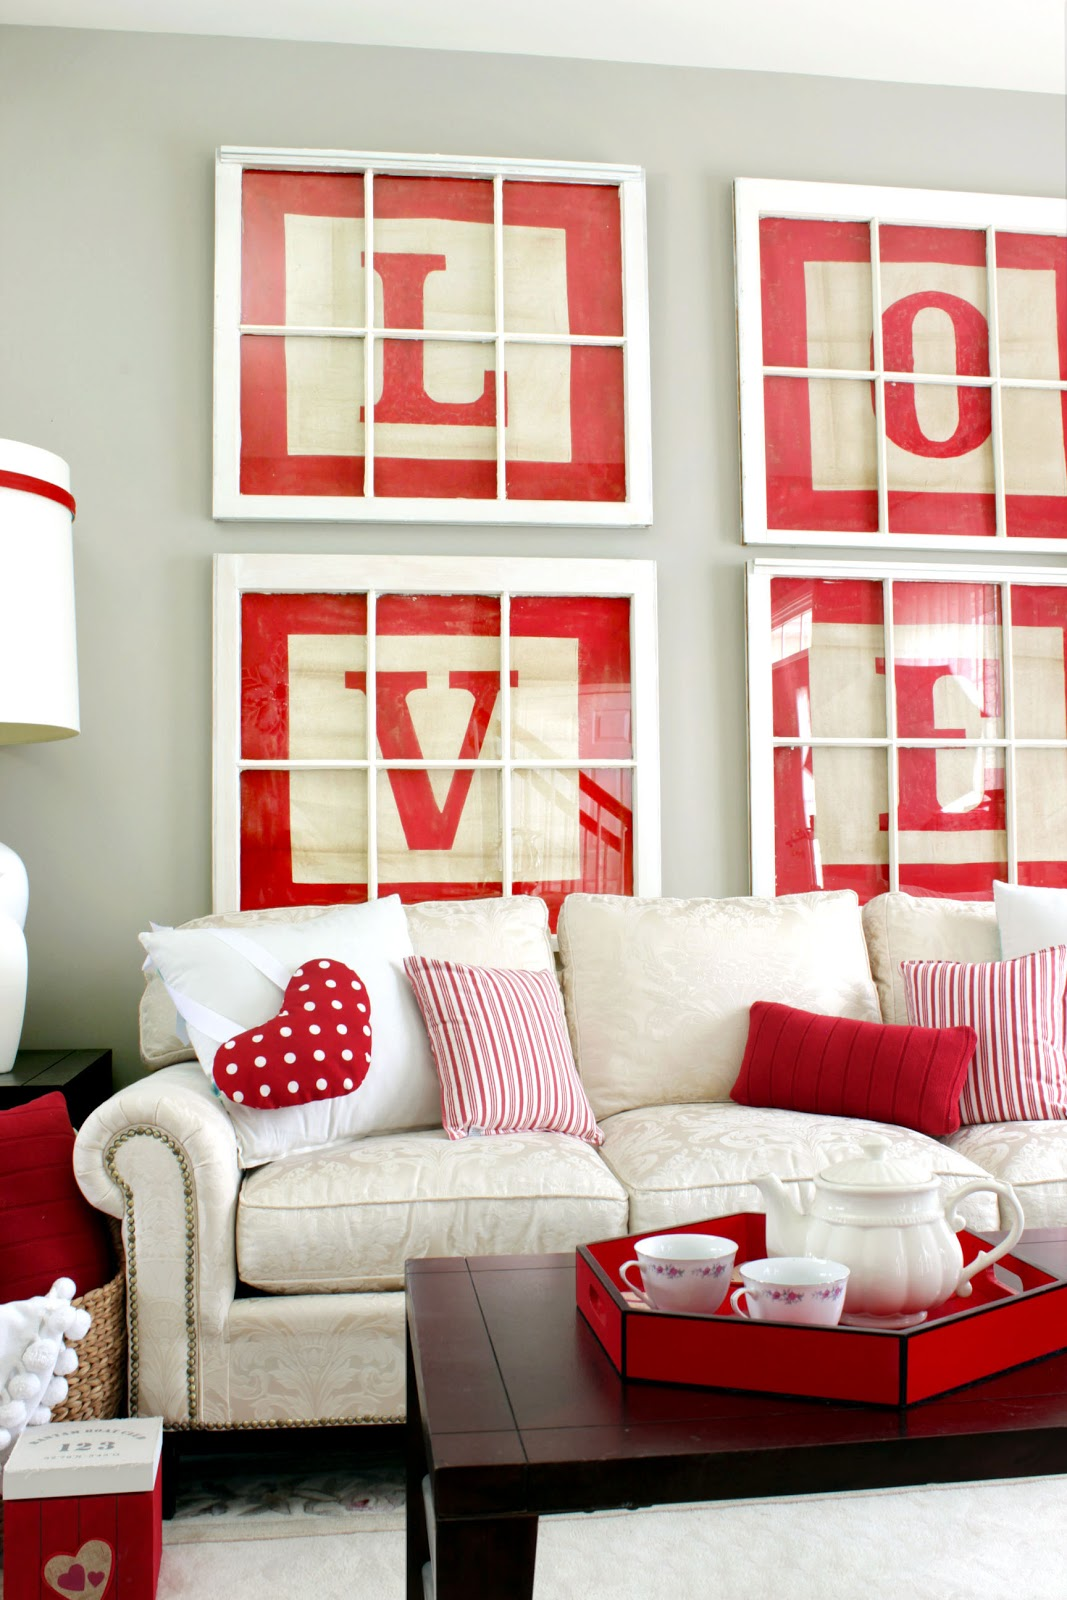 Living room decorated for Valentines with Love wall art and lots of red